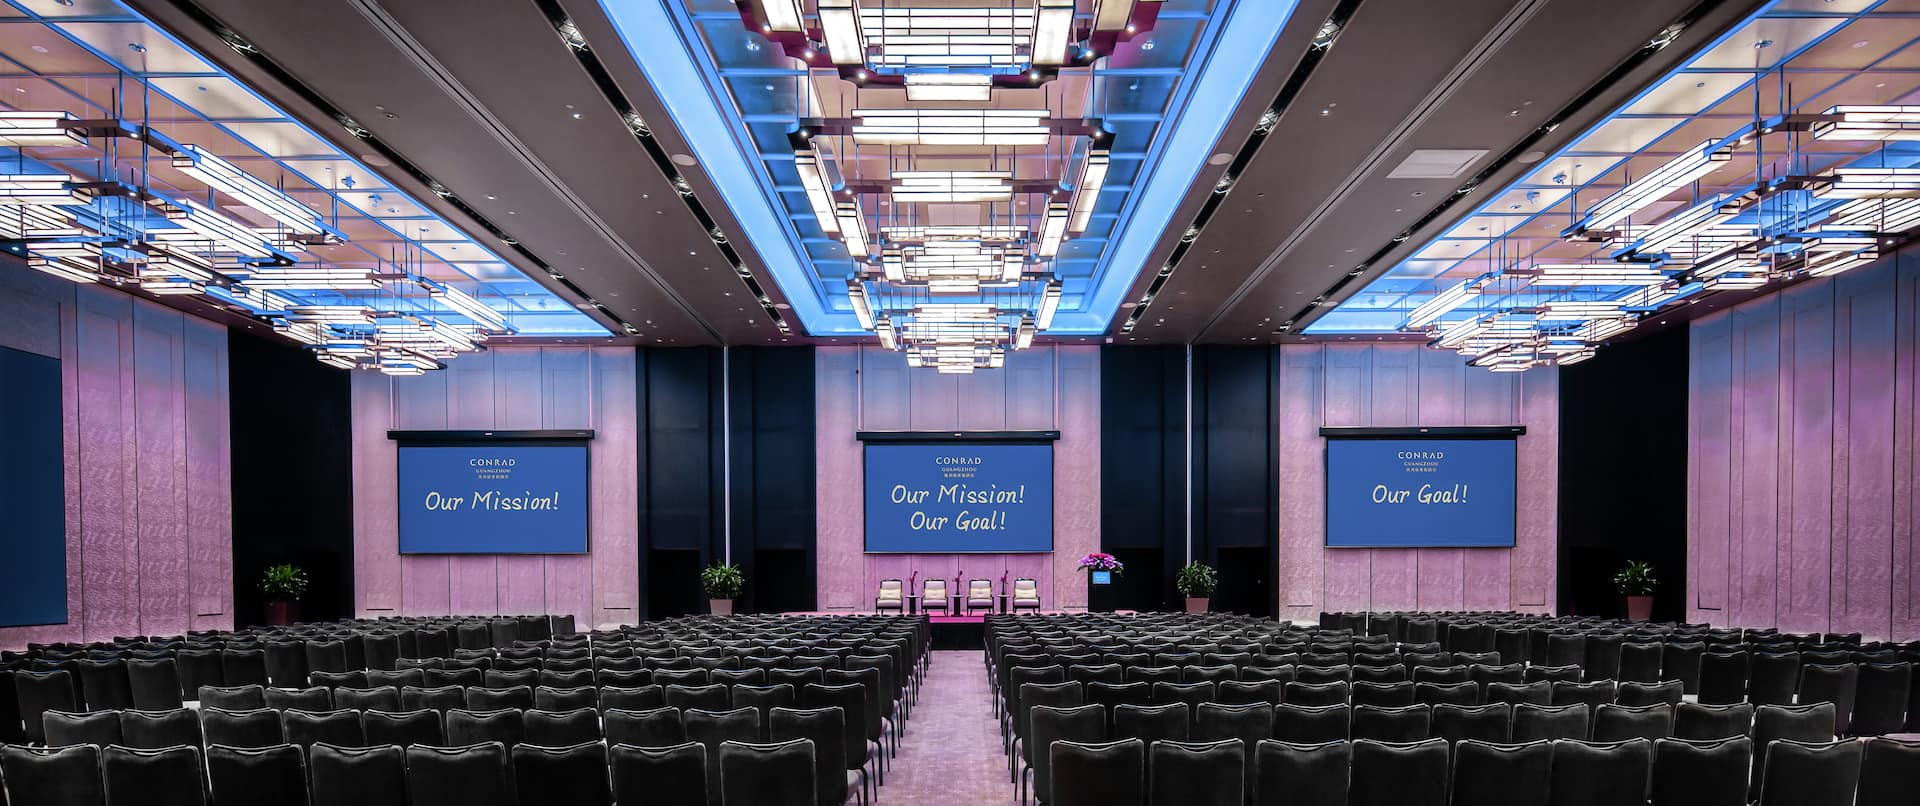 Ballroom with chairs and projectors